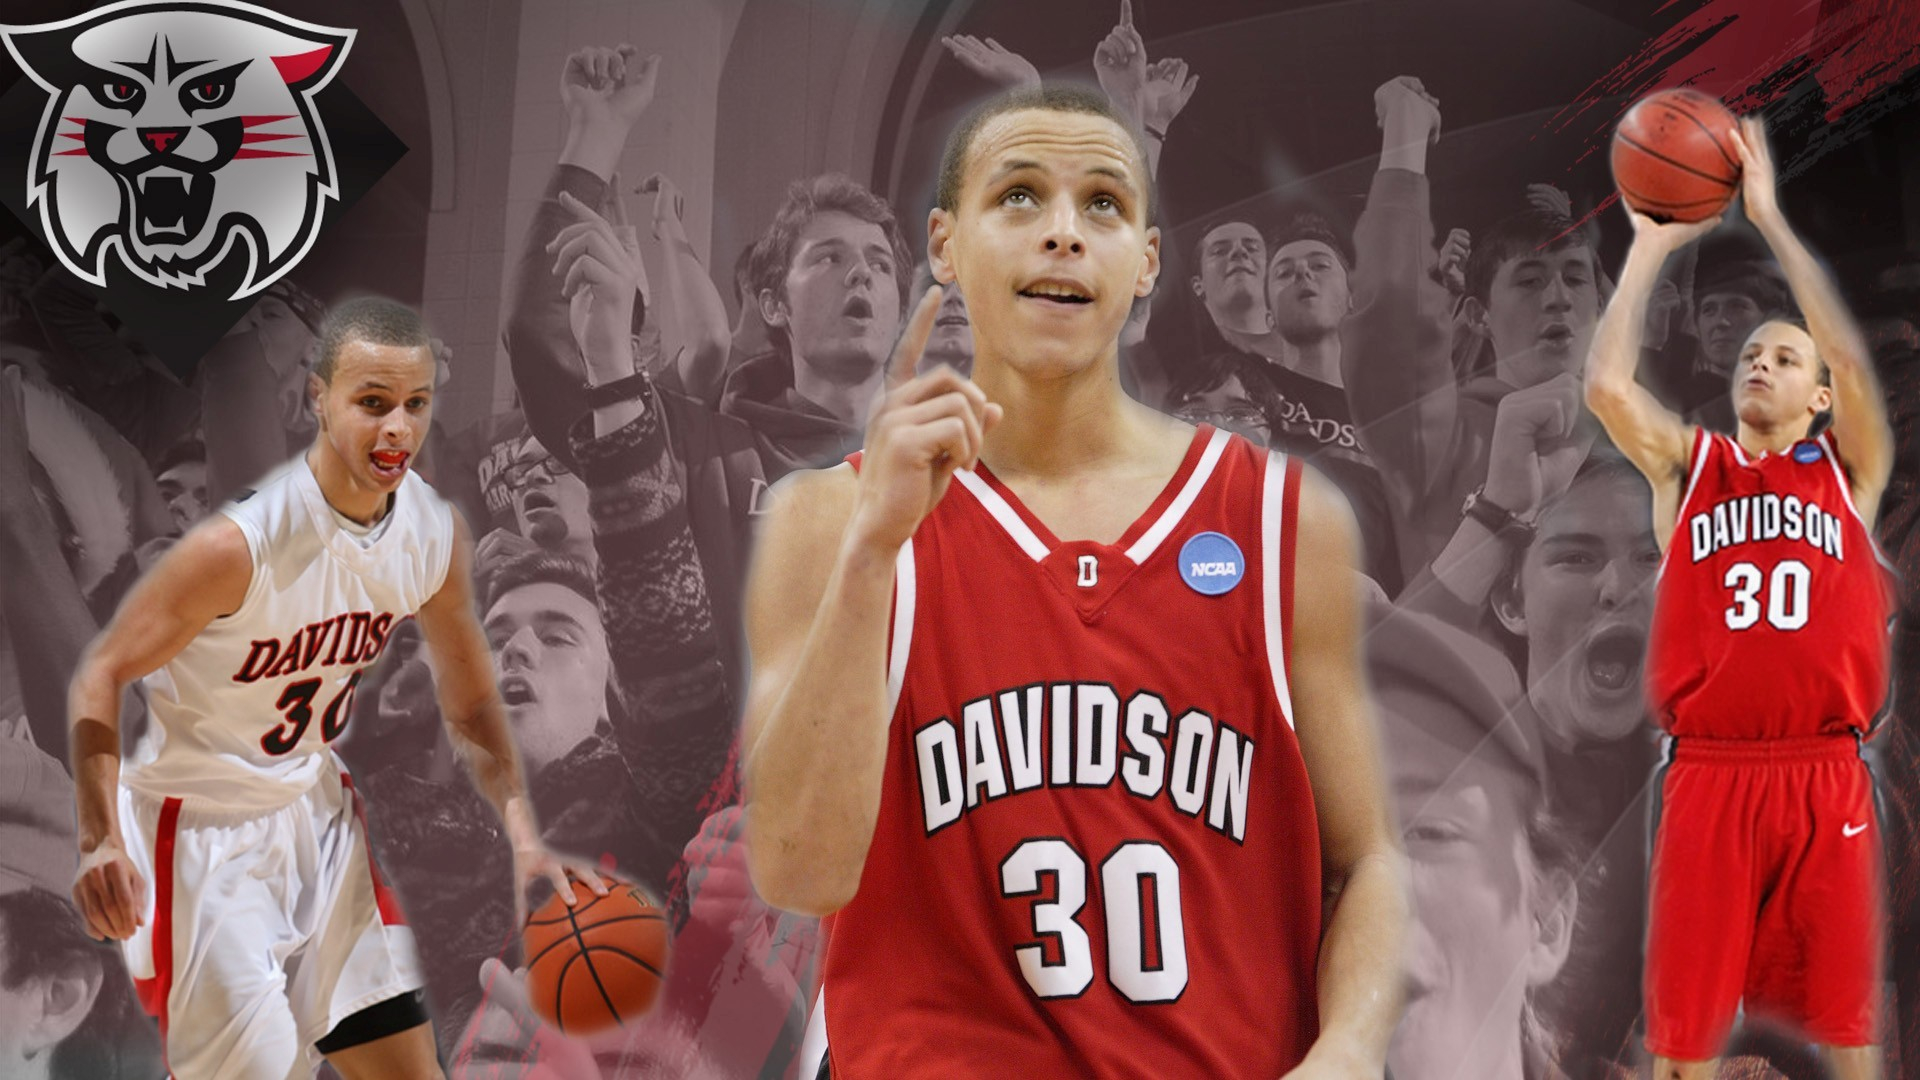 c67ca30d255 Is it time for Davidson to ease off the Stephen Curry bandwagon ...